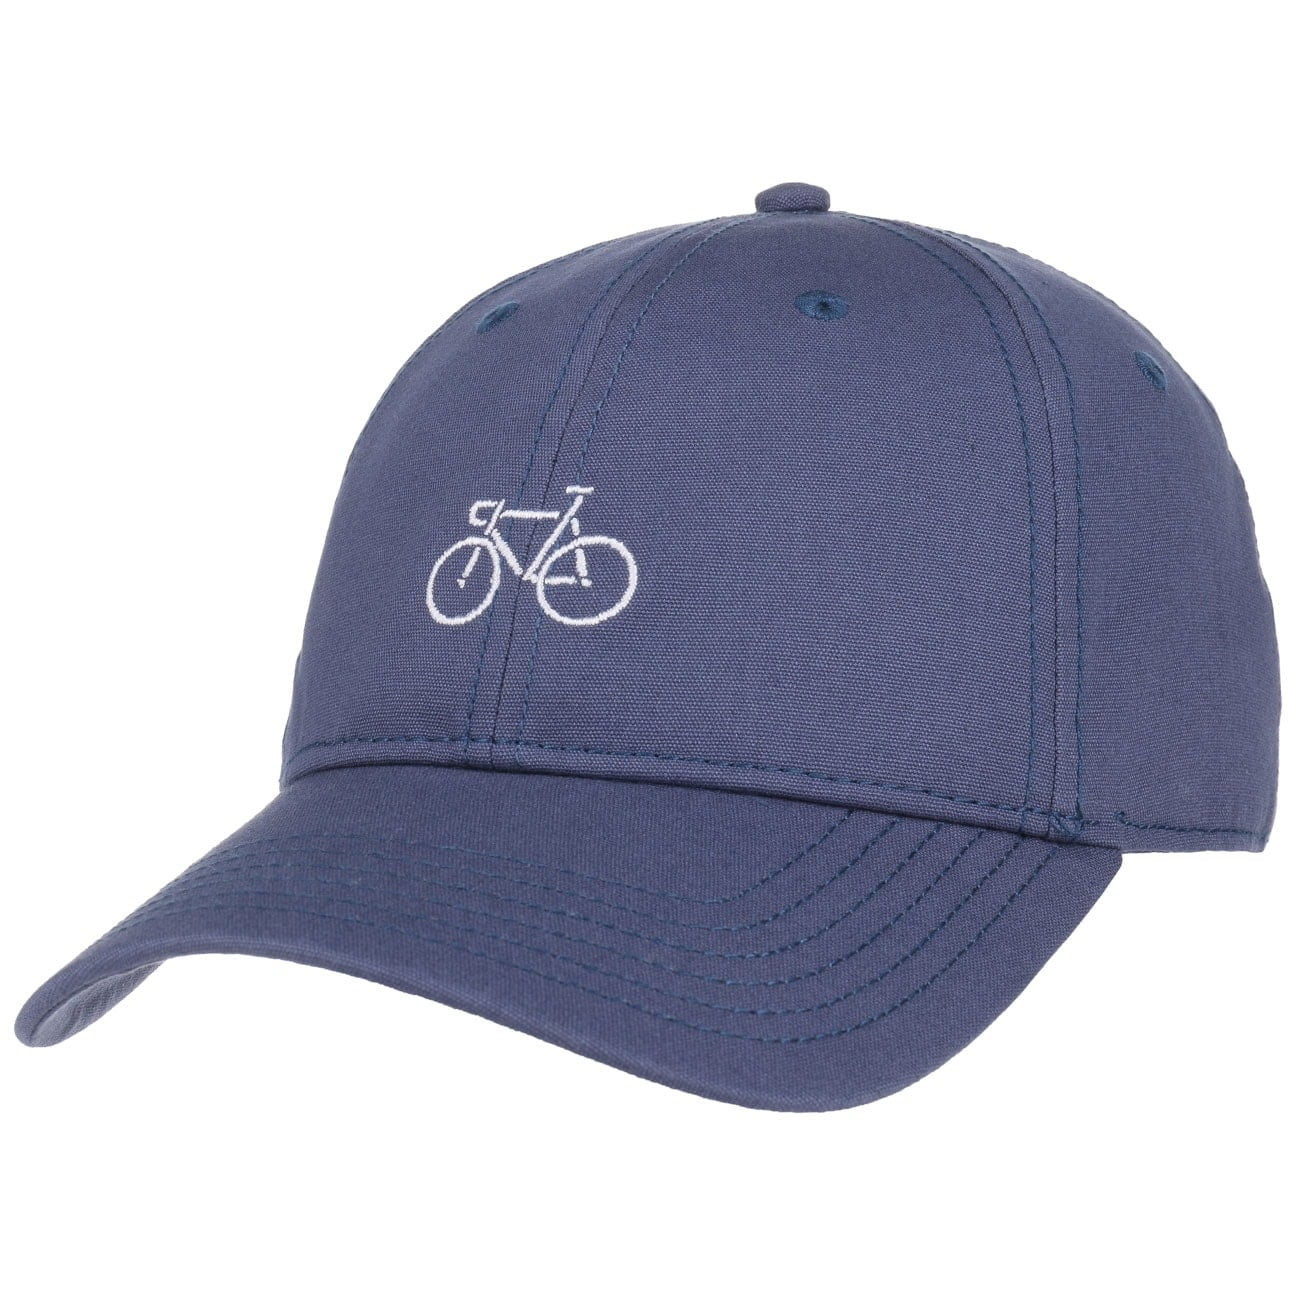 Gorra Picto Bike by dedicated  gorra de algod?n